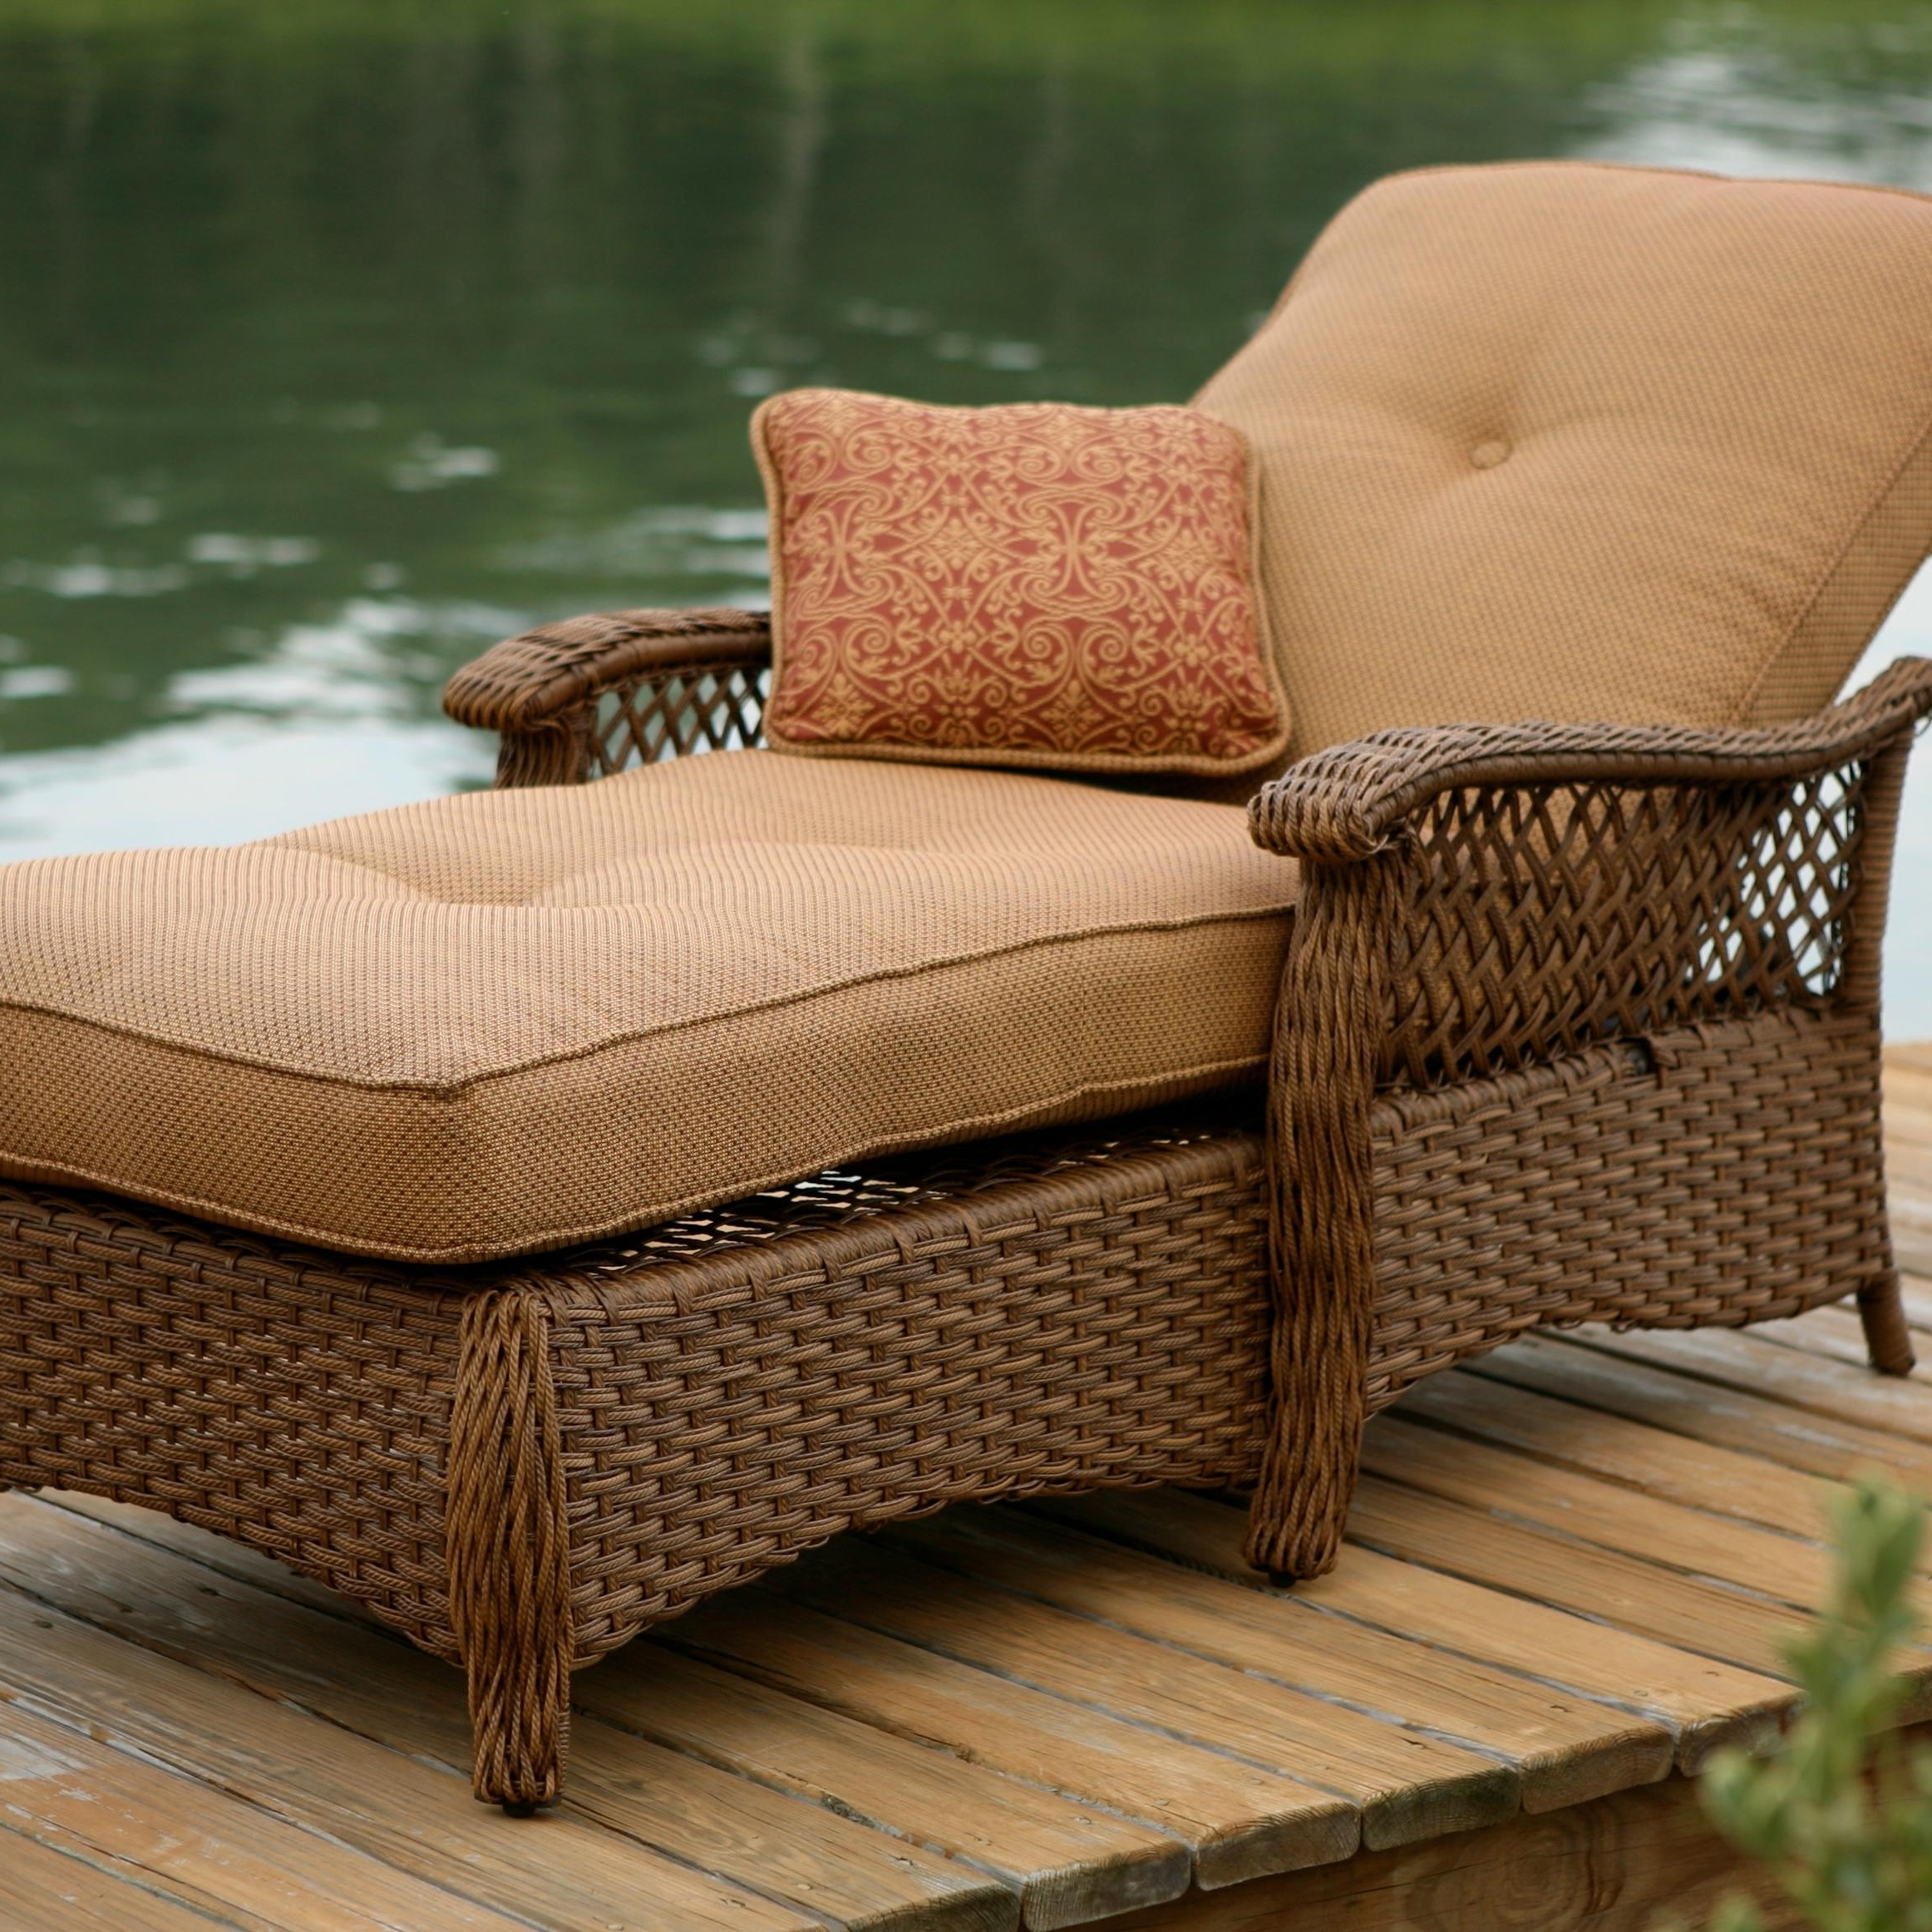 Popular Woven Chaise Lounge Chair • Lounge Chairs Ideas Throughout Wicker Chaise Lounge Chairs (View 8 of 15)